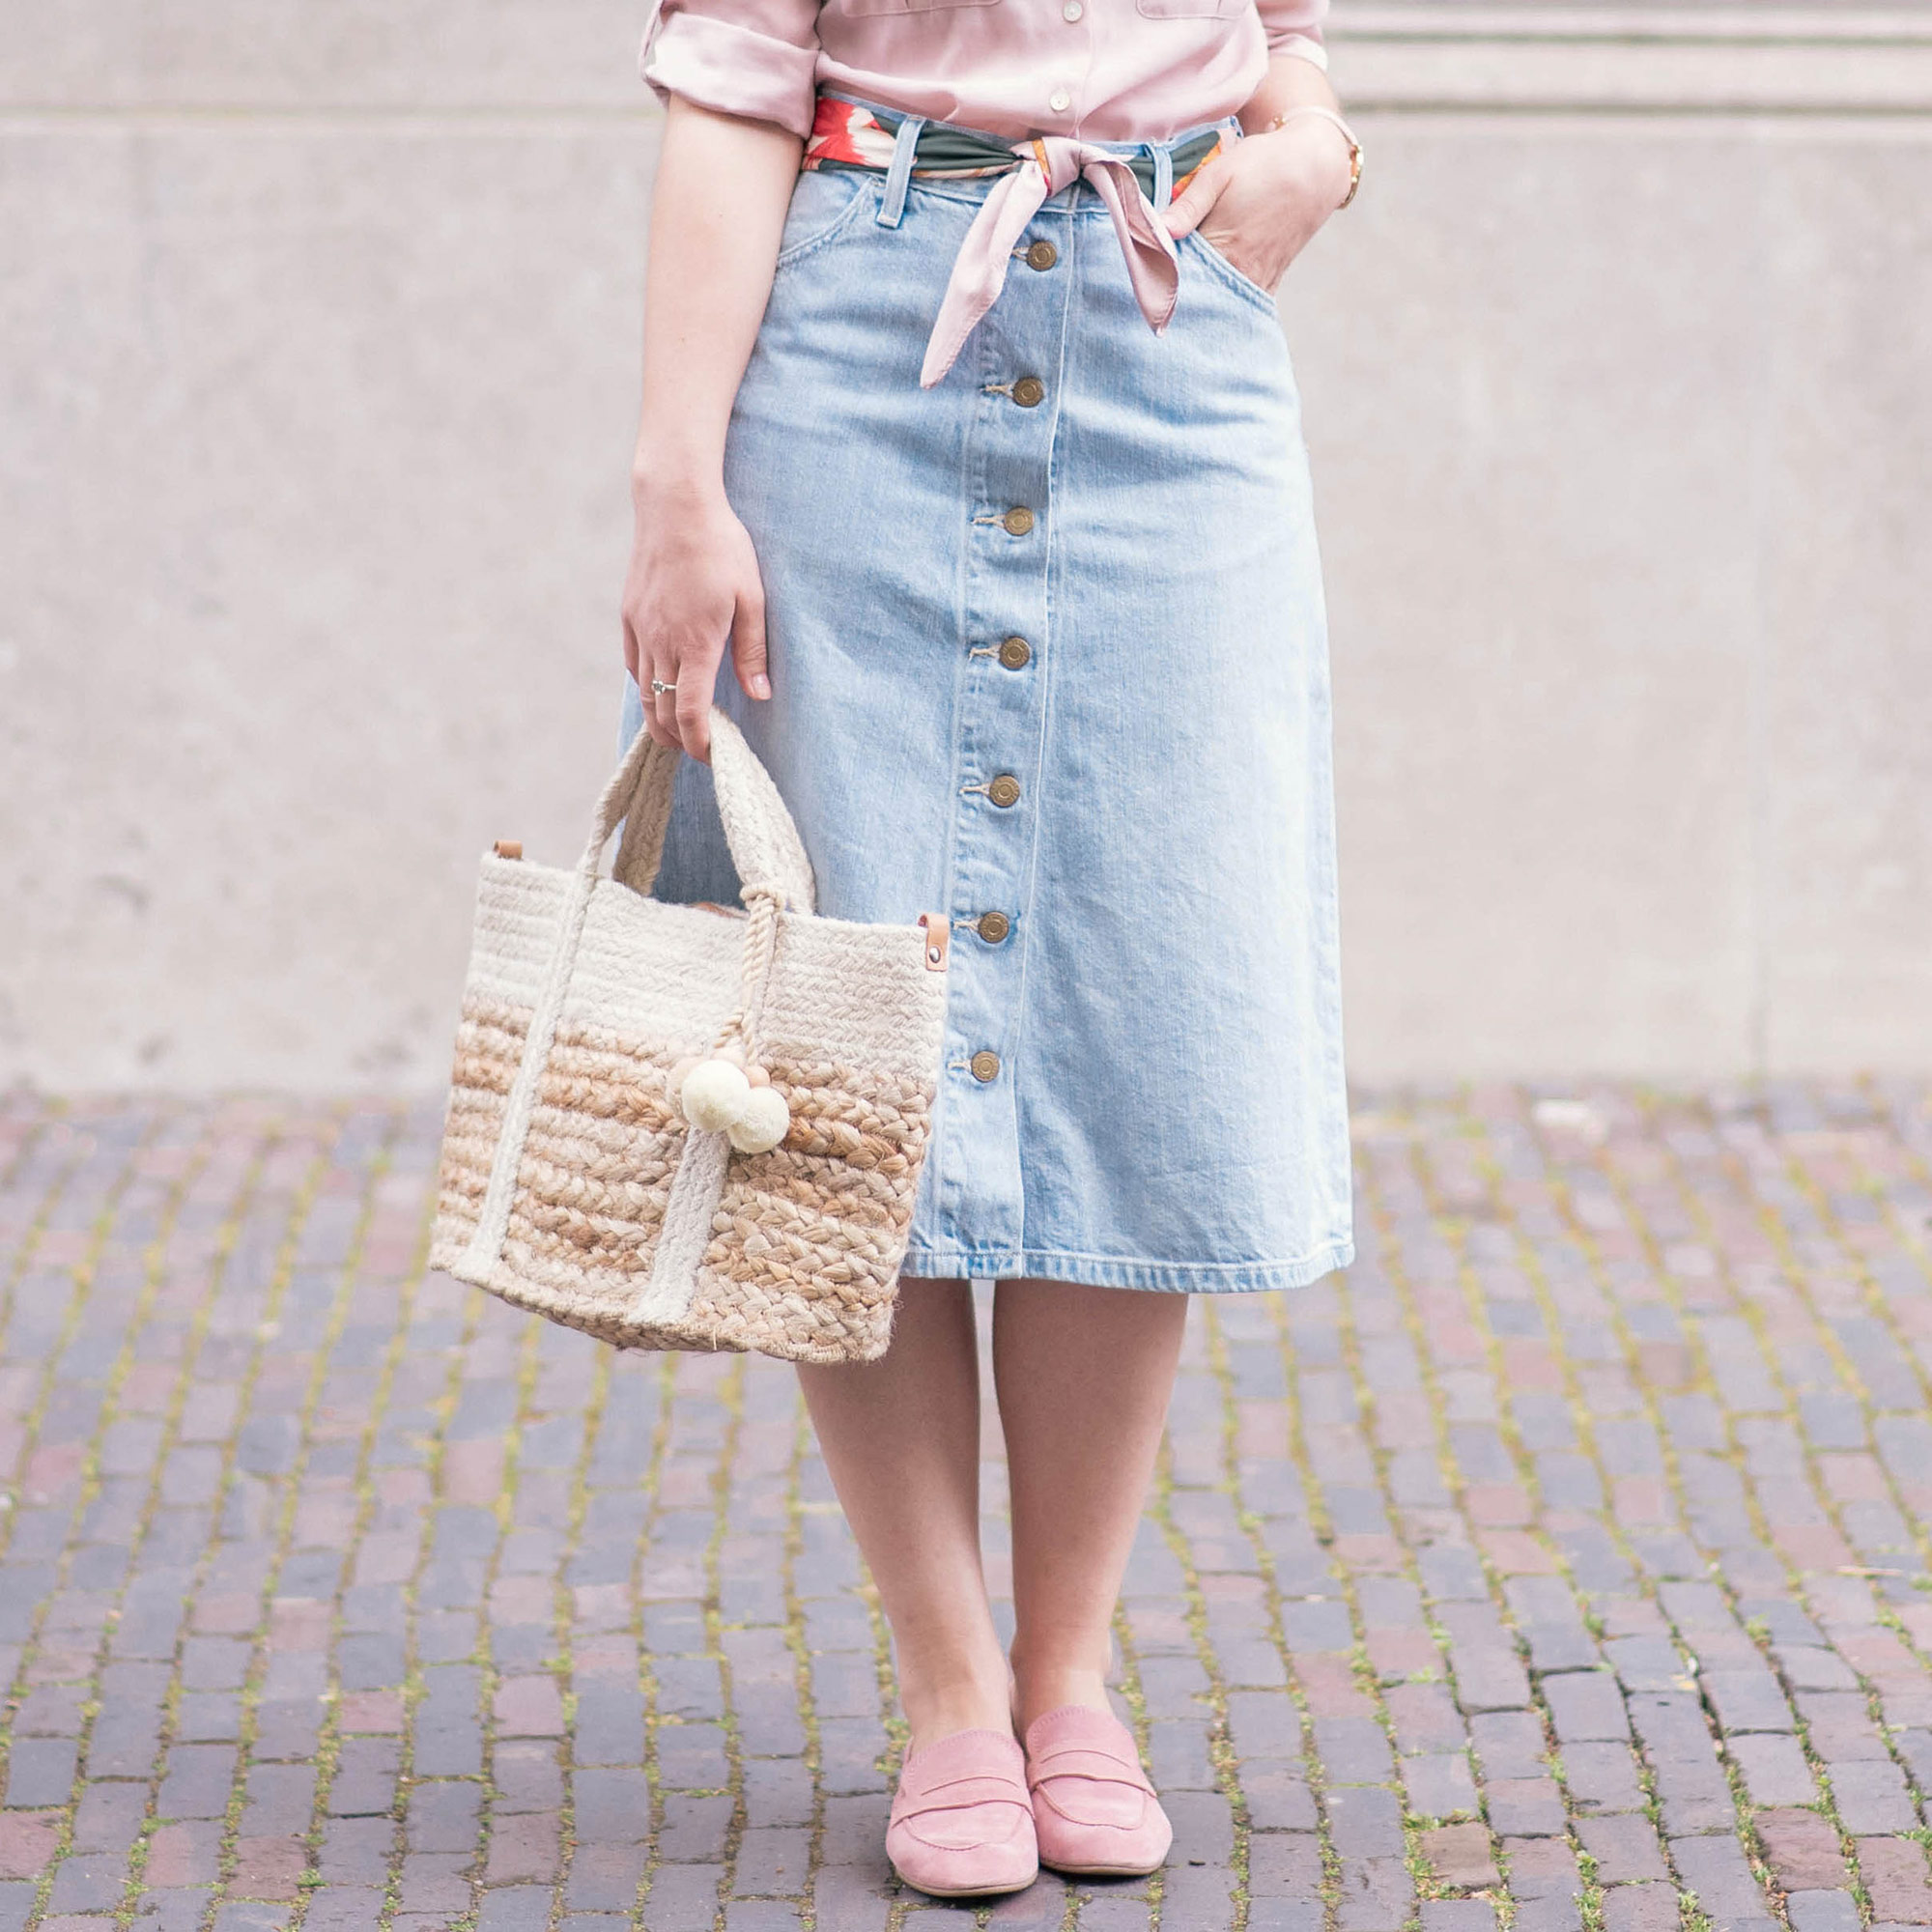 relaxed-spring-days-thepetitecat-spring-style